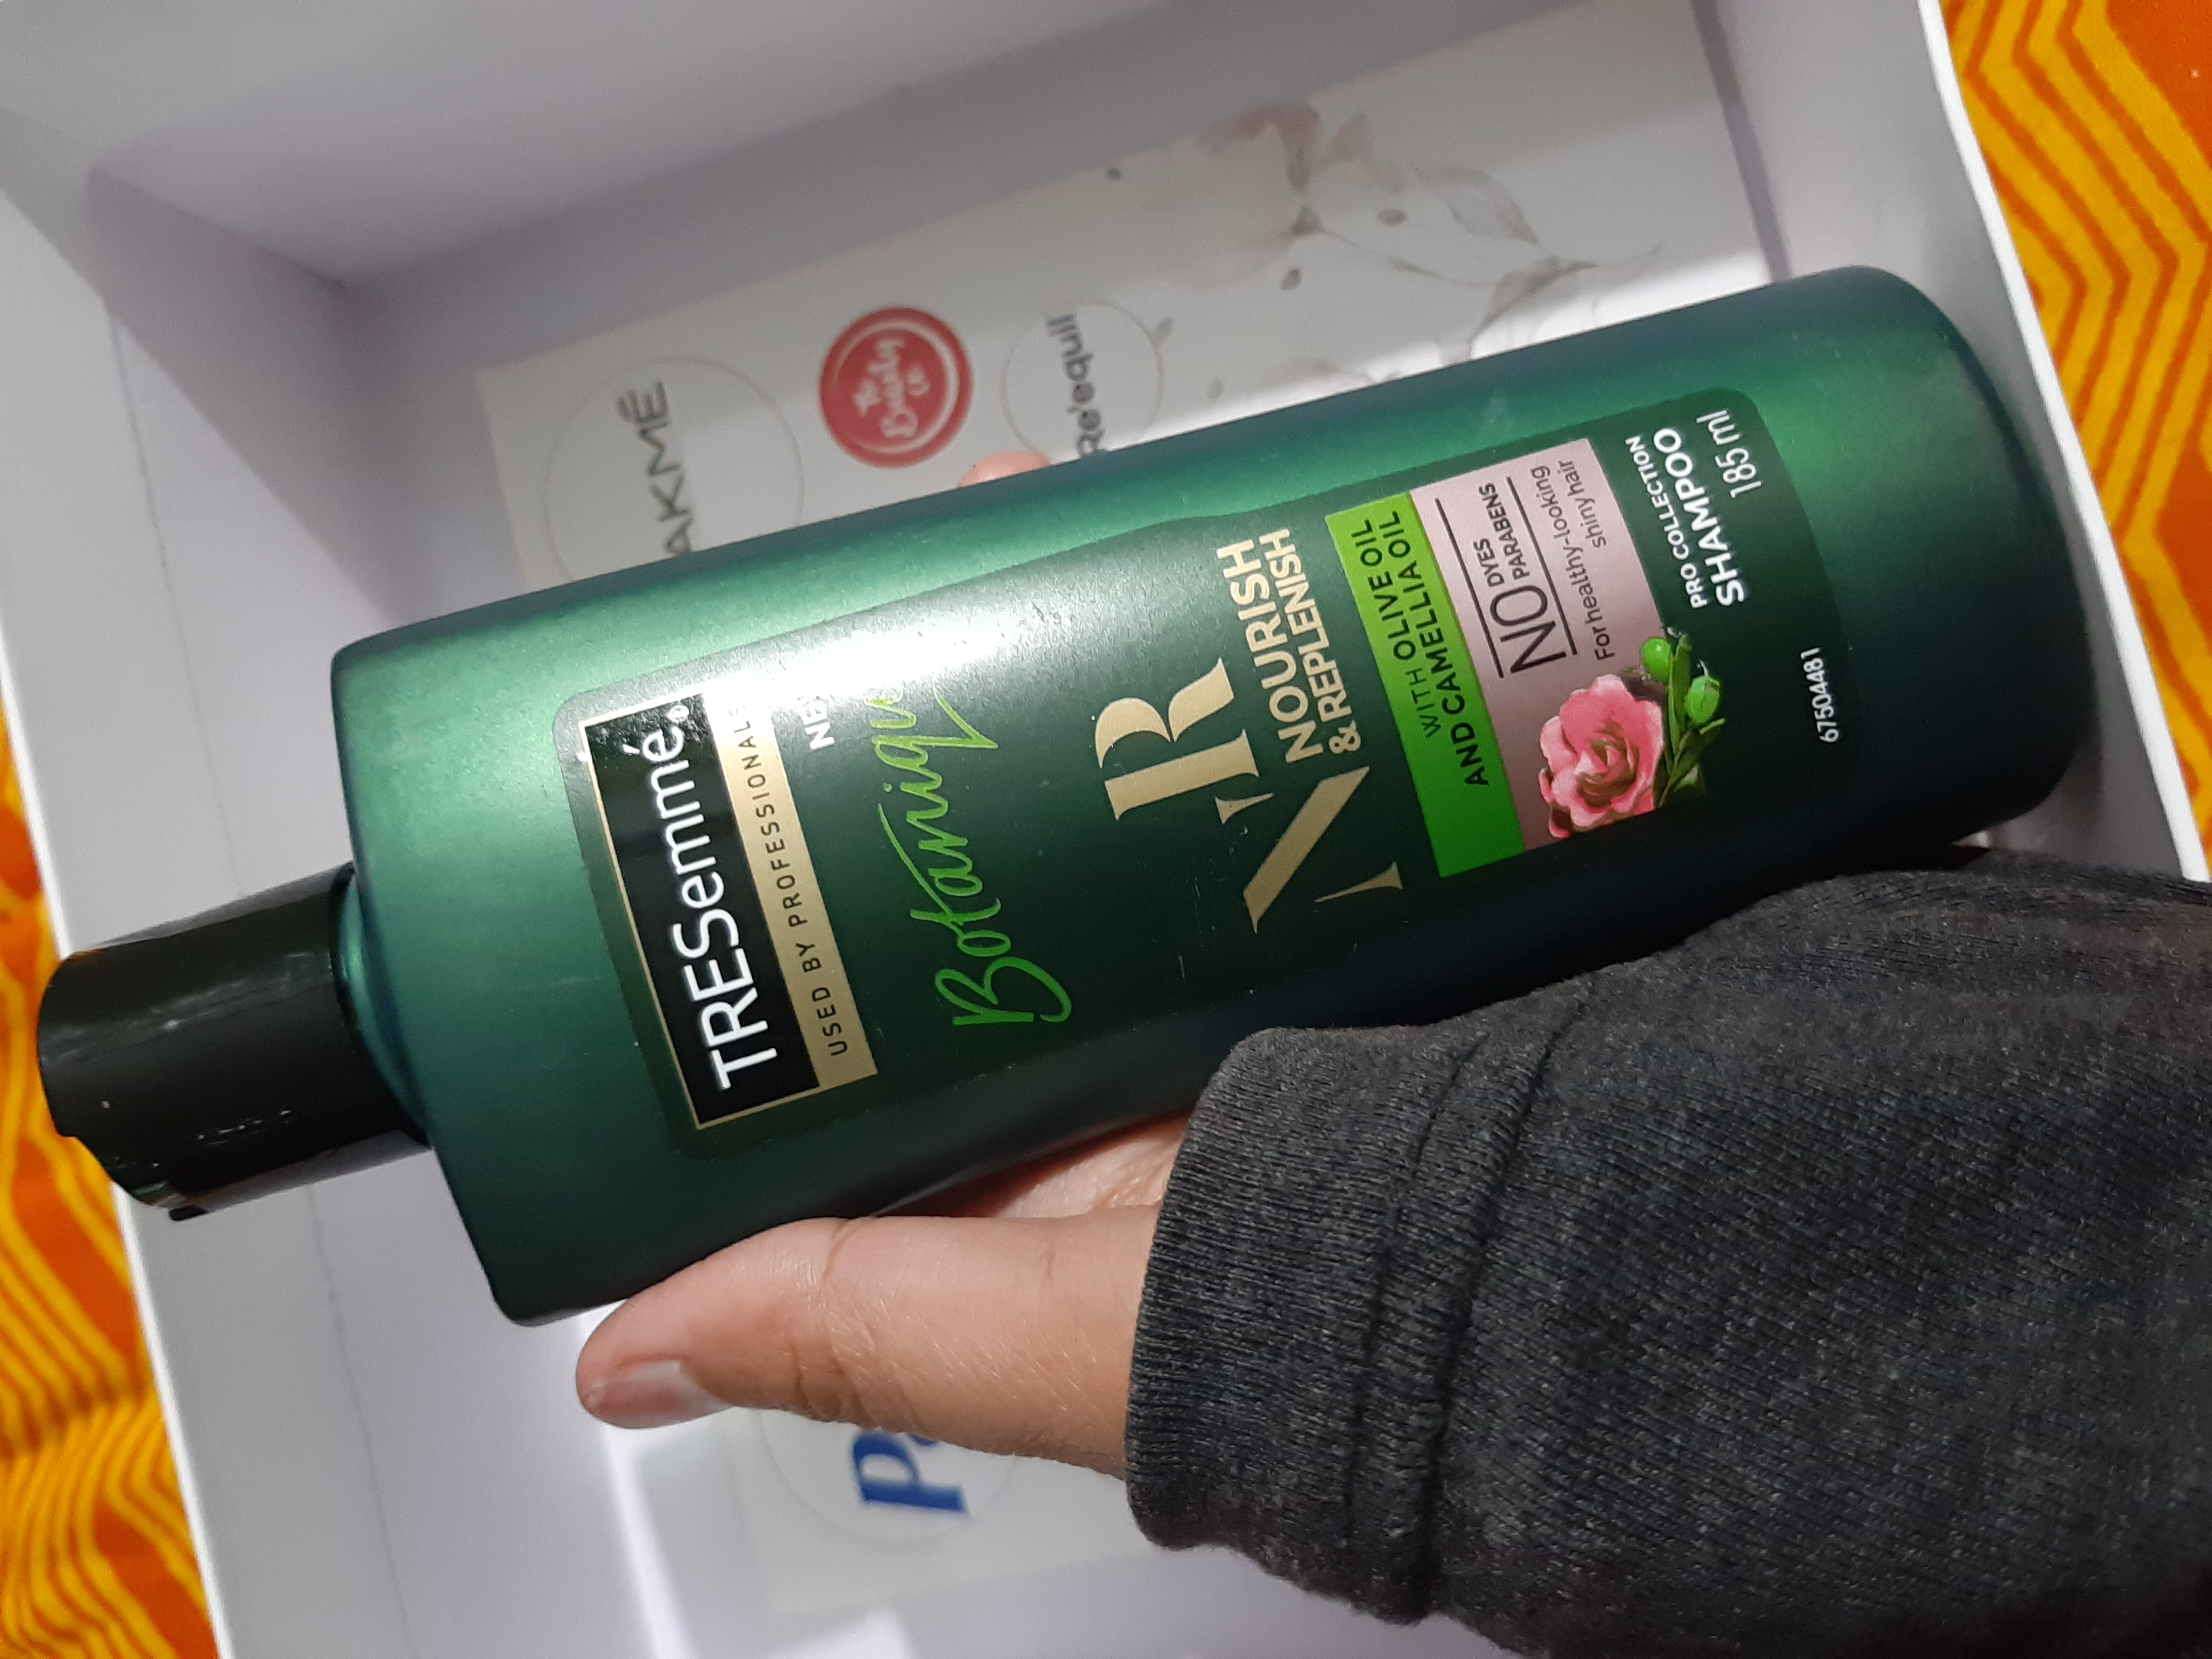 Tresemme Botanique Nourish And Replenish Shampoo-Must- have product for smooth and silky hair.-By humakhan-3